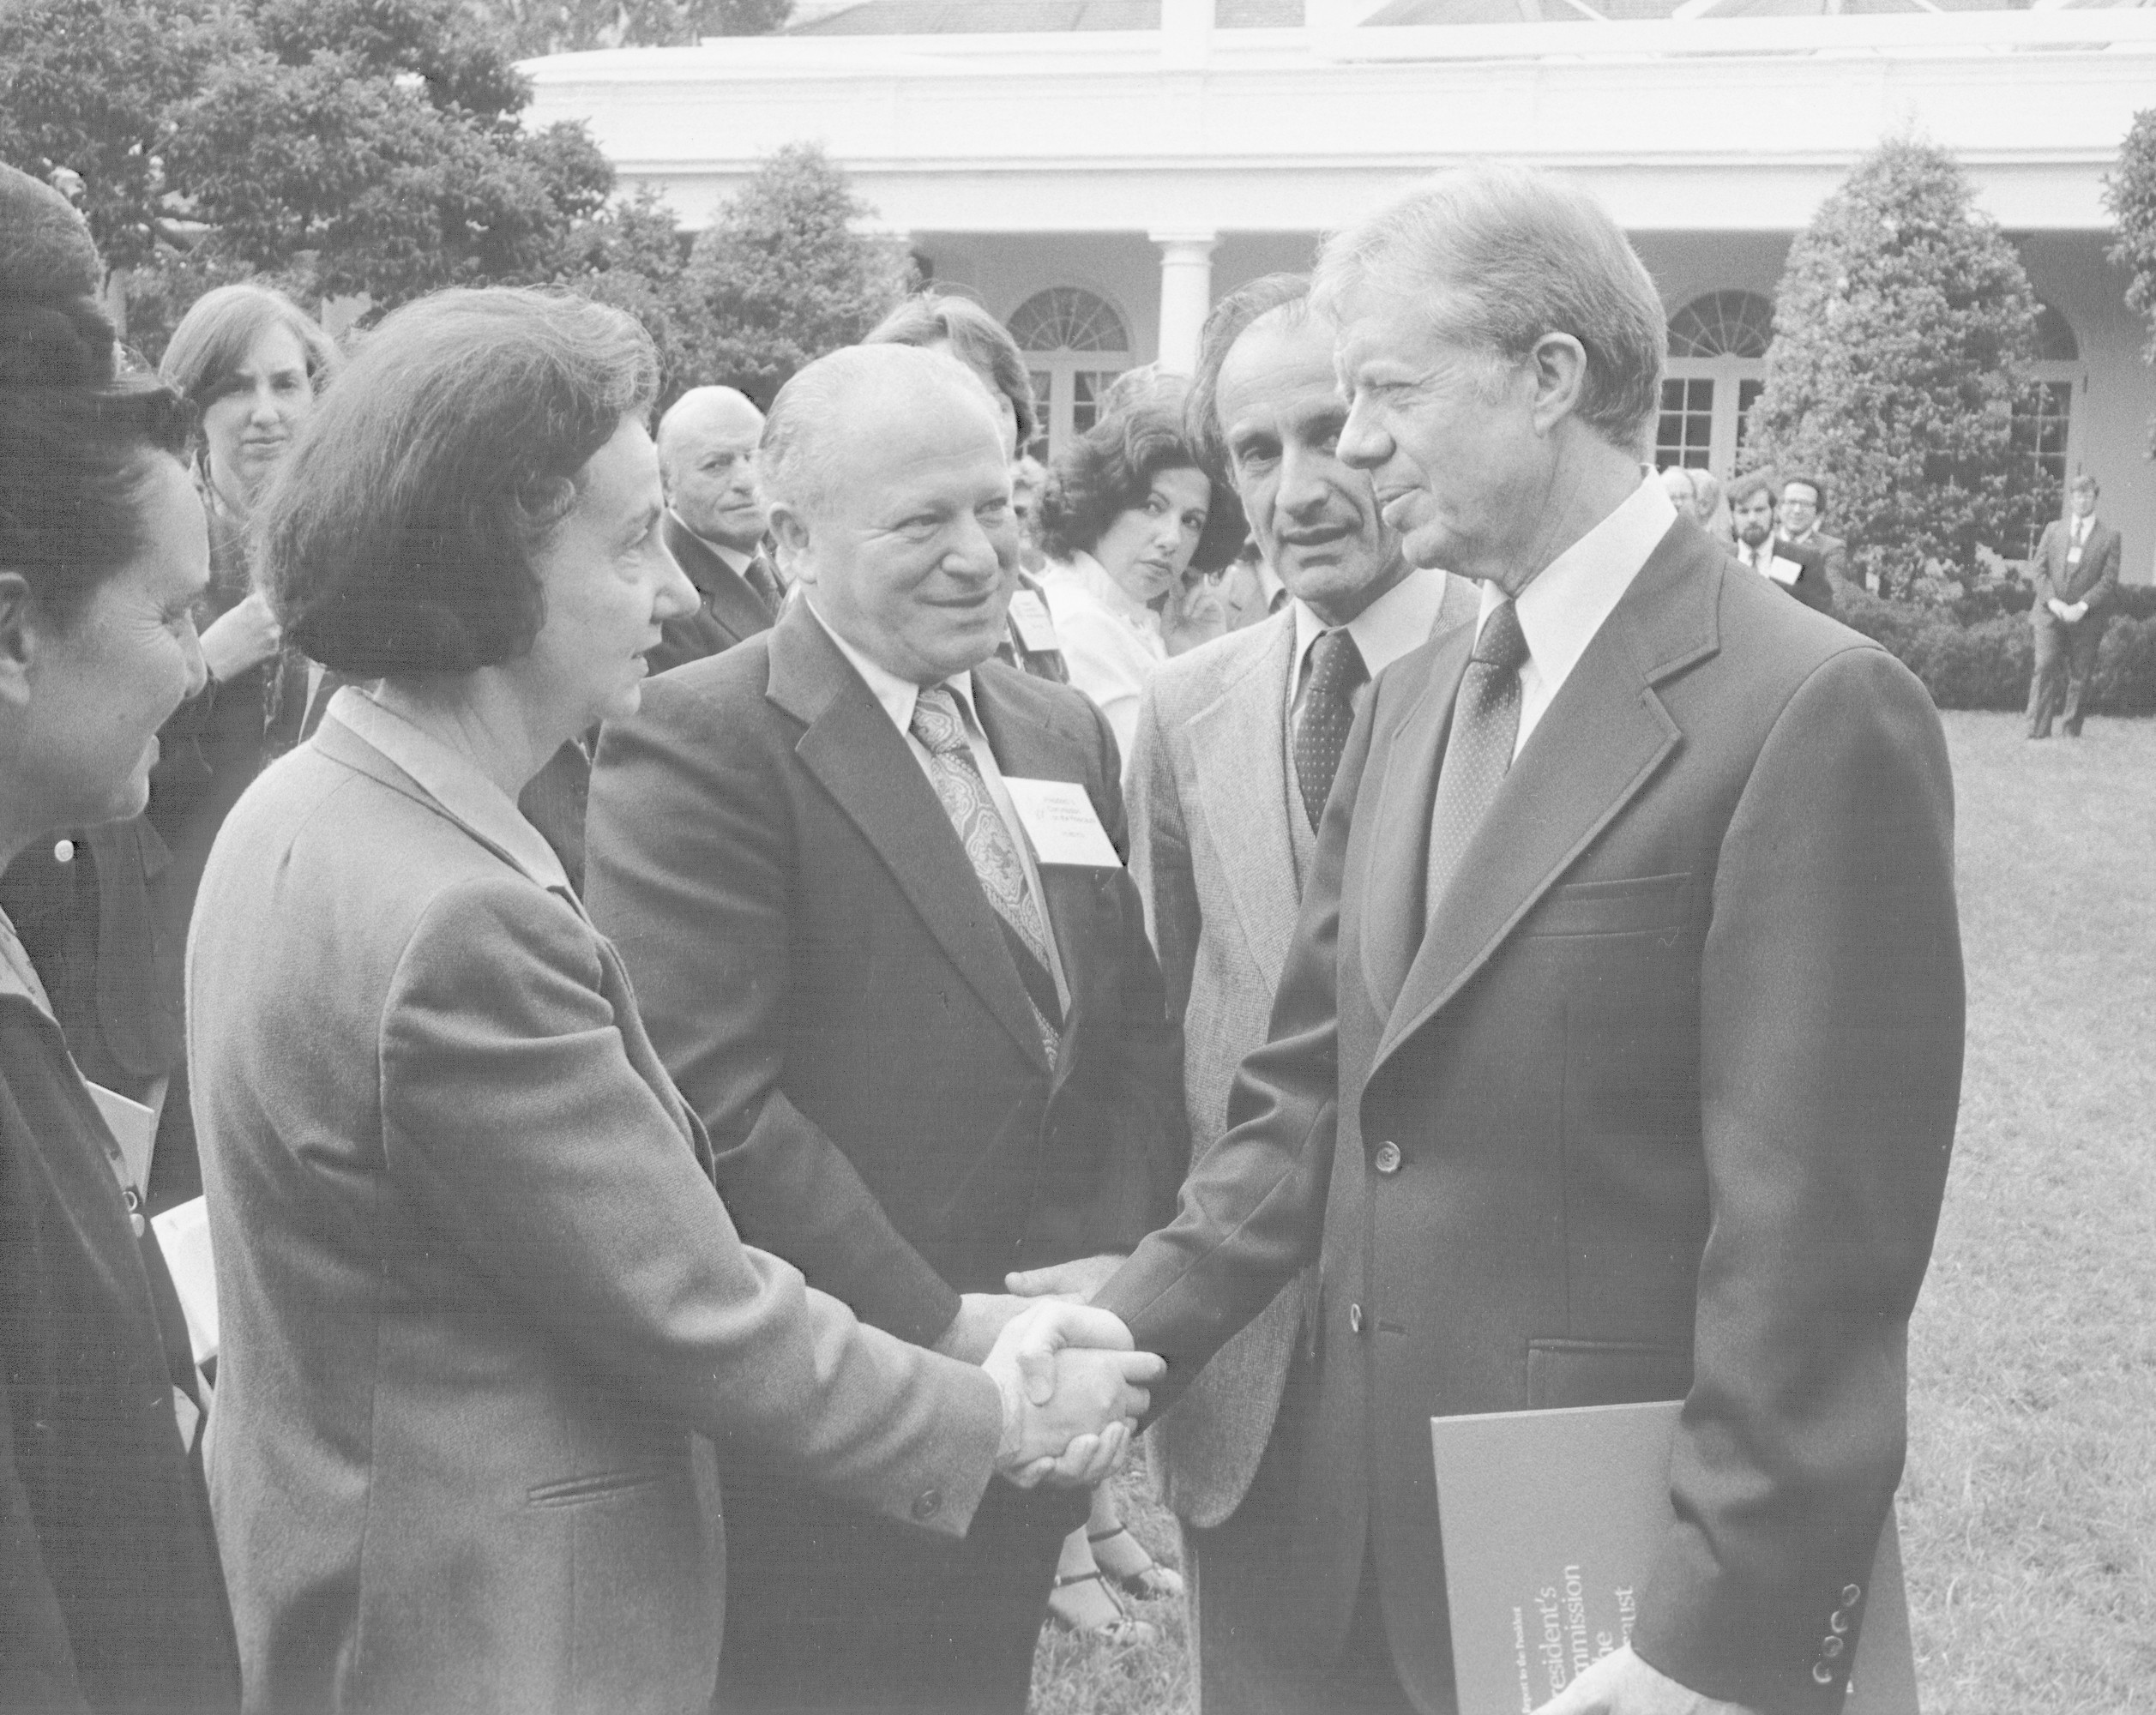 Vladka Meed shakes the hand of President Jimmy Carter at a White House Rose Garden ceremony marking the official presentation of the report of the U.S. Holocaust Commission to the president by commission chairman Elie Wiesel.   The report indicated favorable findings for the establishment of a Holocaust Memorial in the United States.  Also pictured are Benjamin Meed (second from the left) and Elie Wiesel (third from the left).